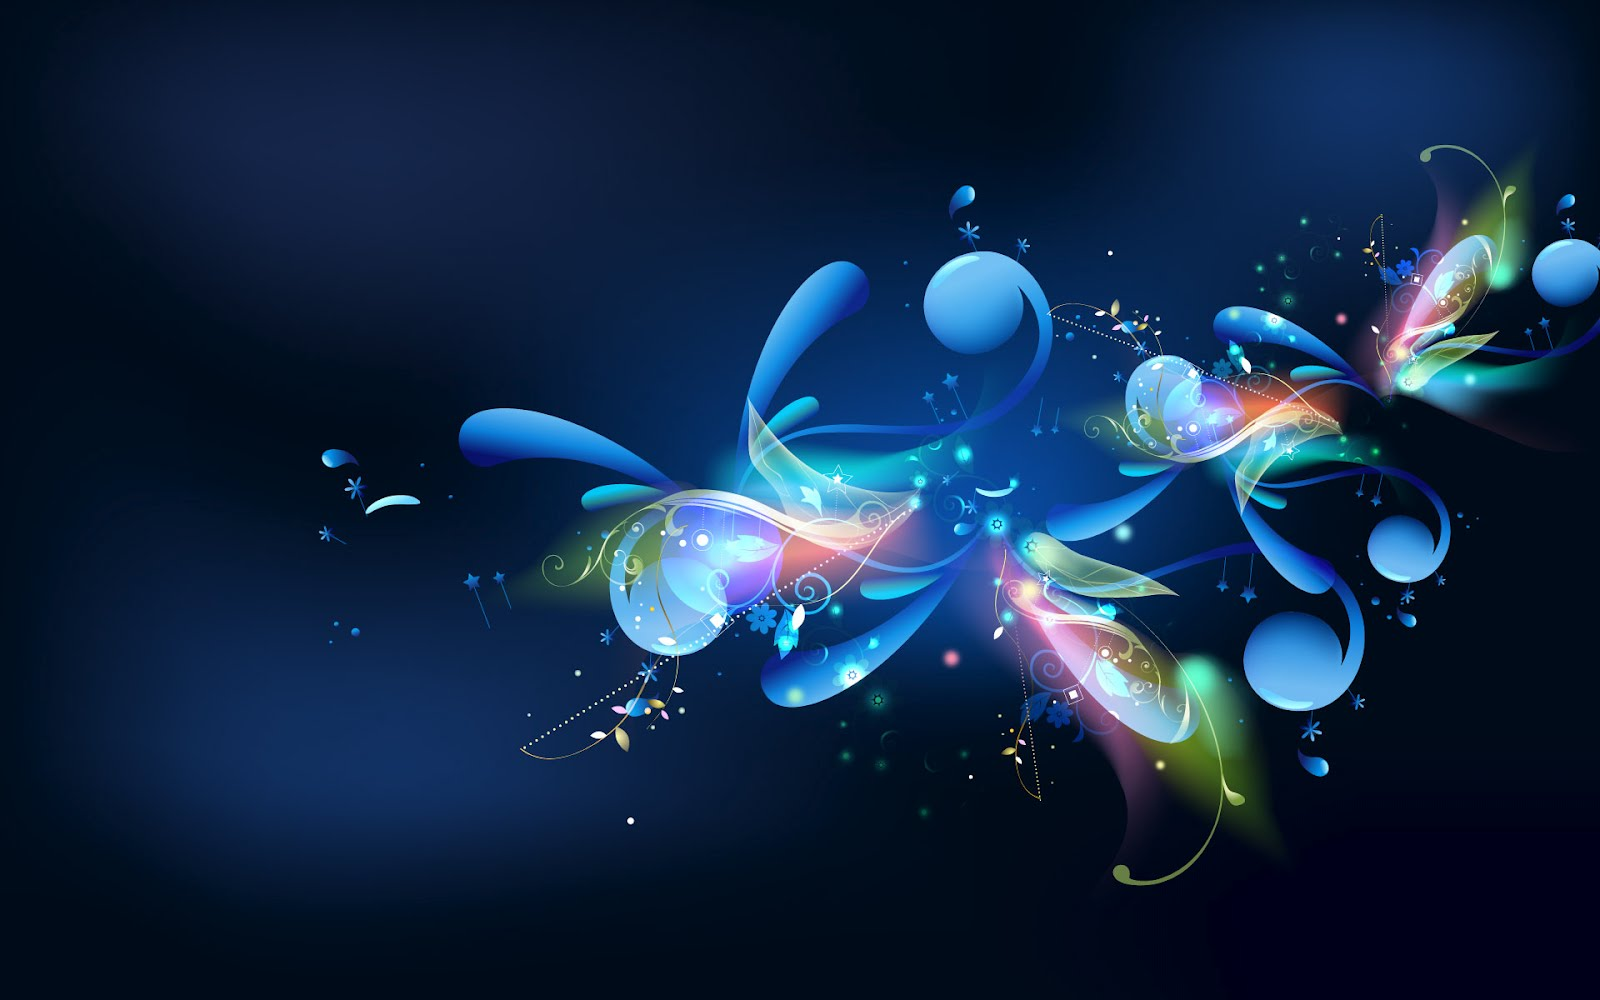 Colorful Abstract Design Background Wallpaper | Colorful ...